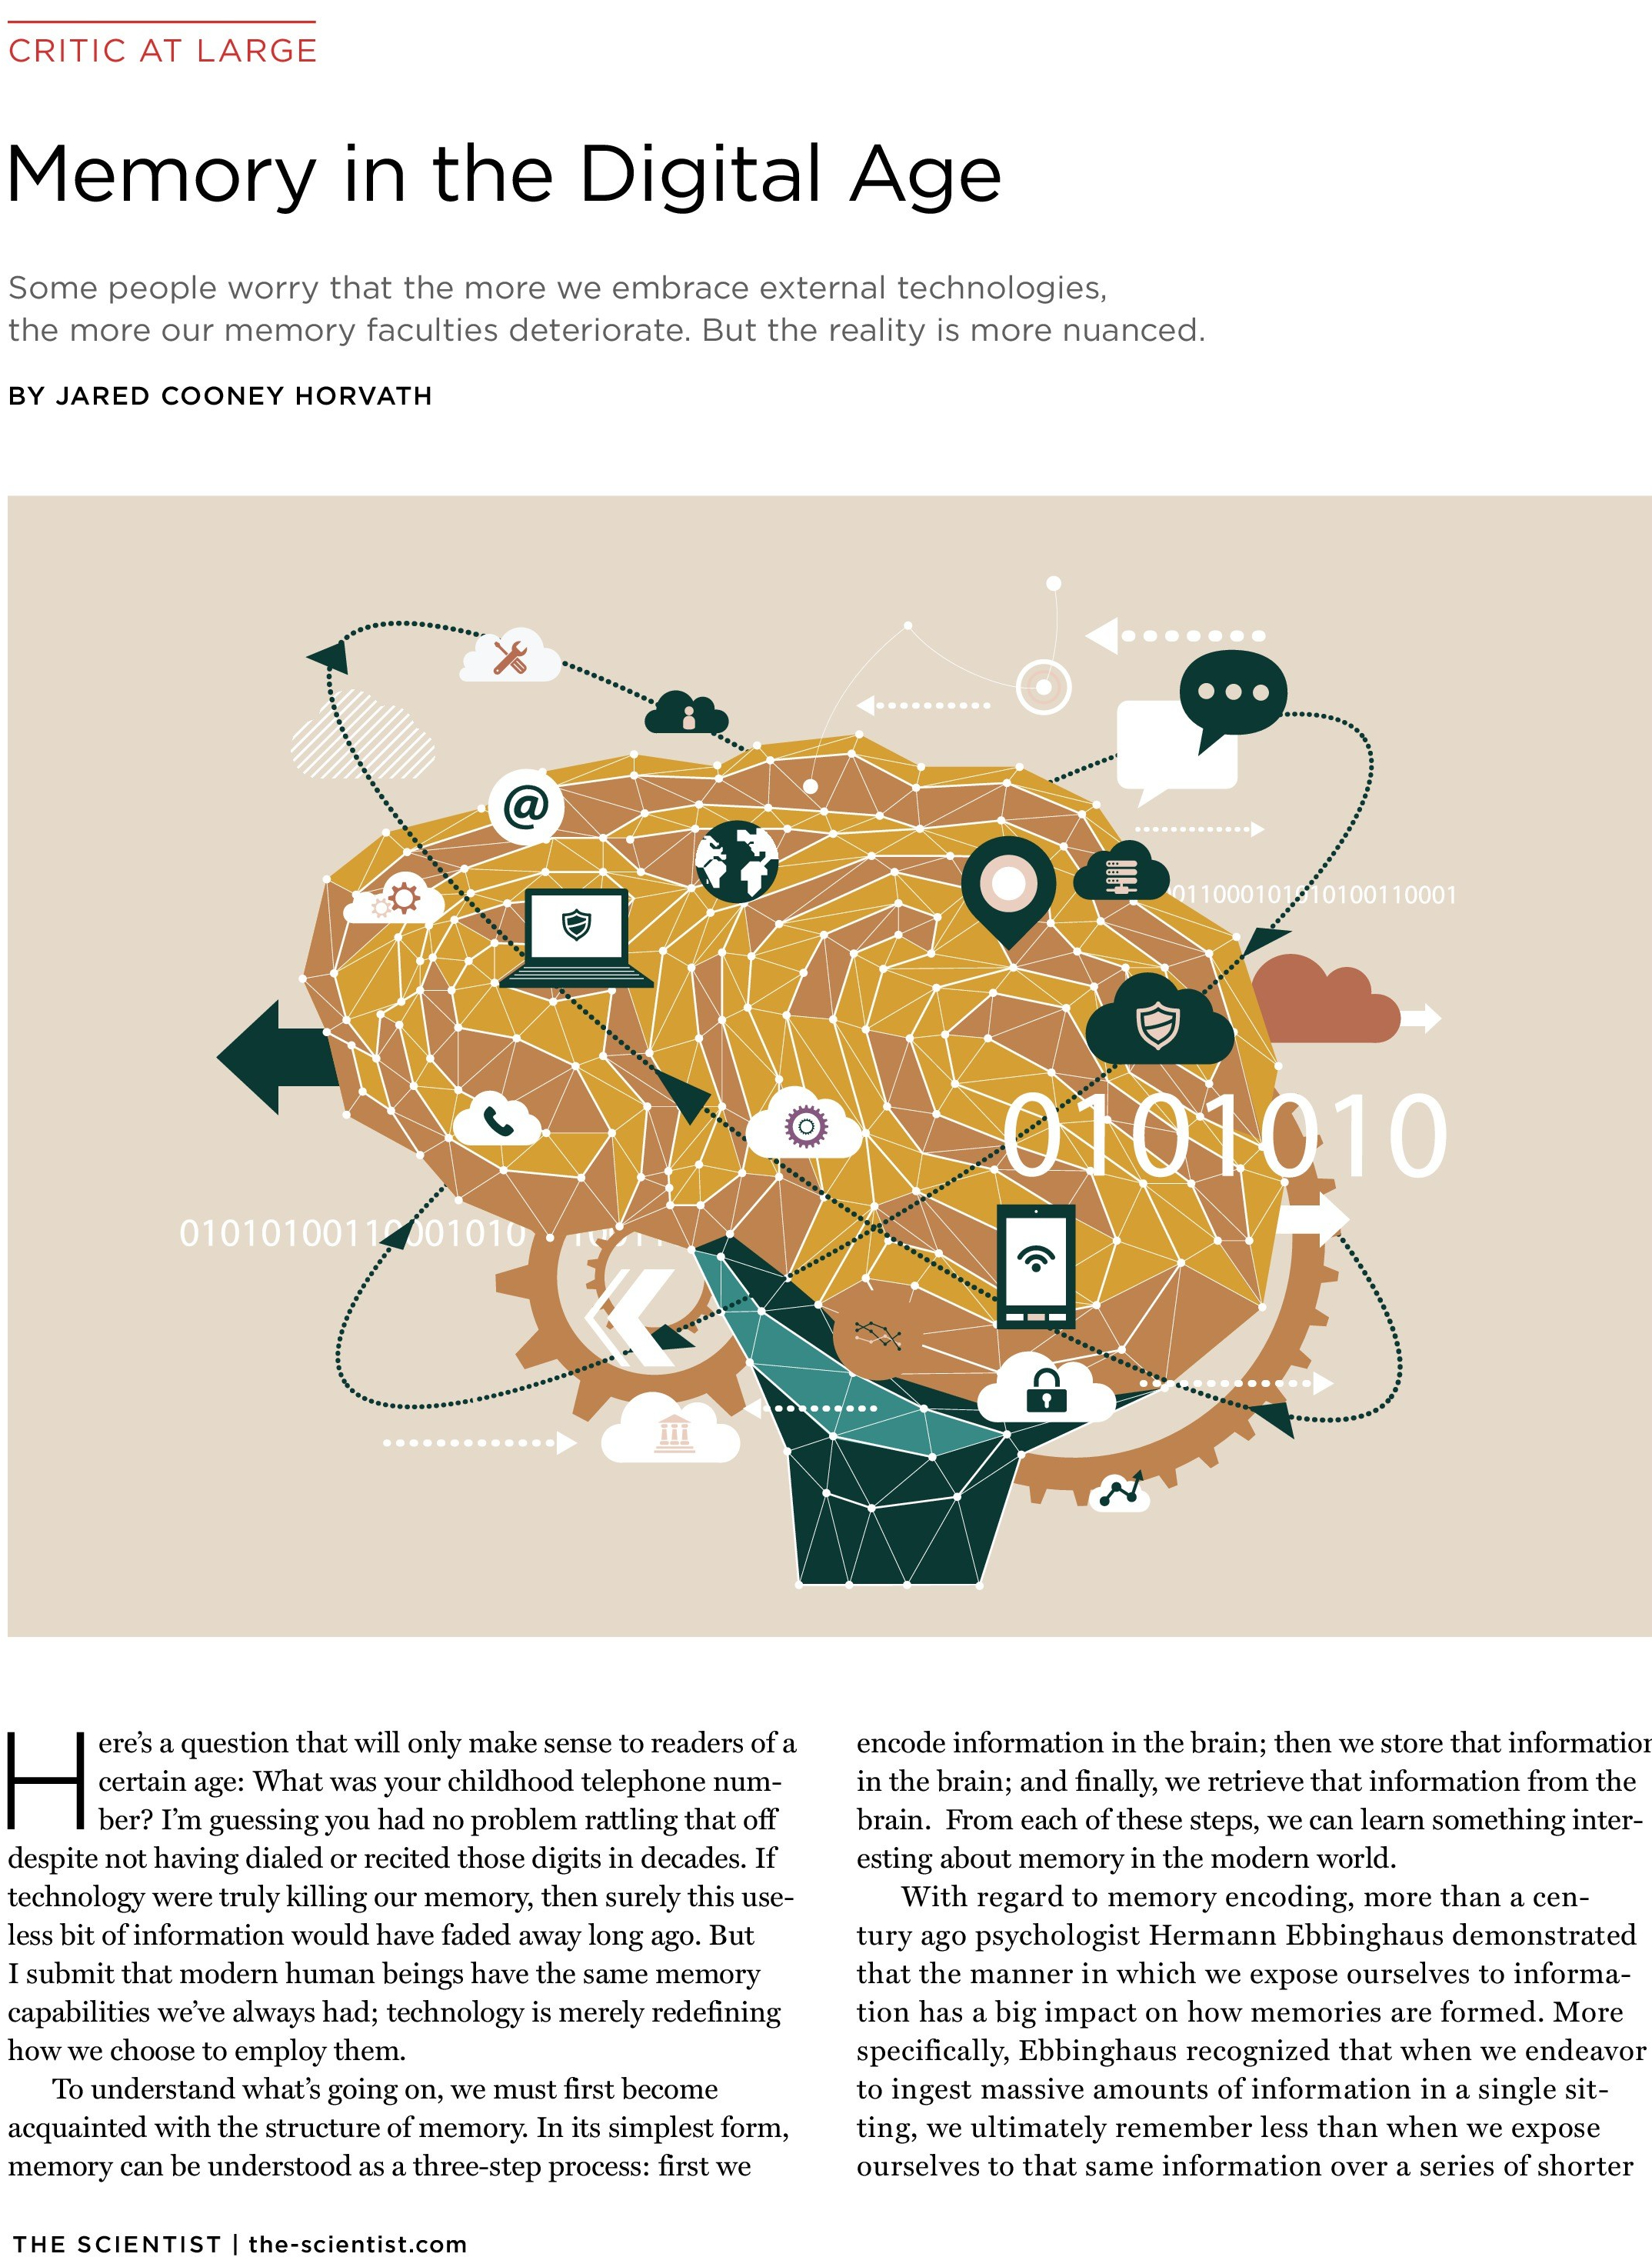 TheScientist May 2020-Memory in the Digital Age